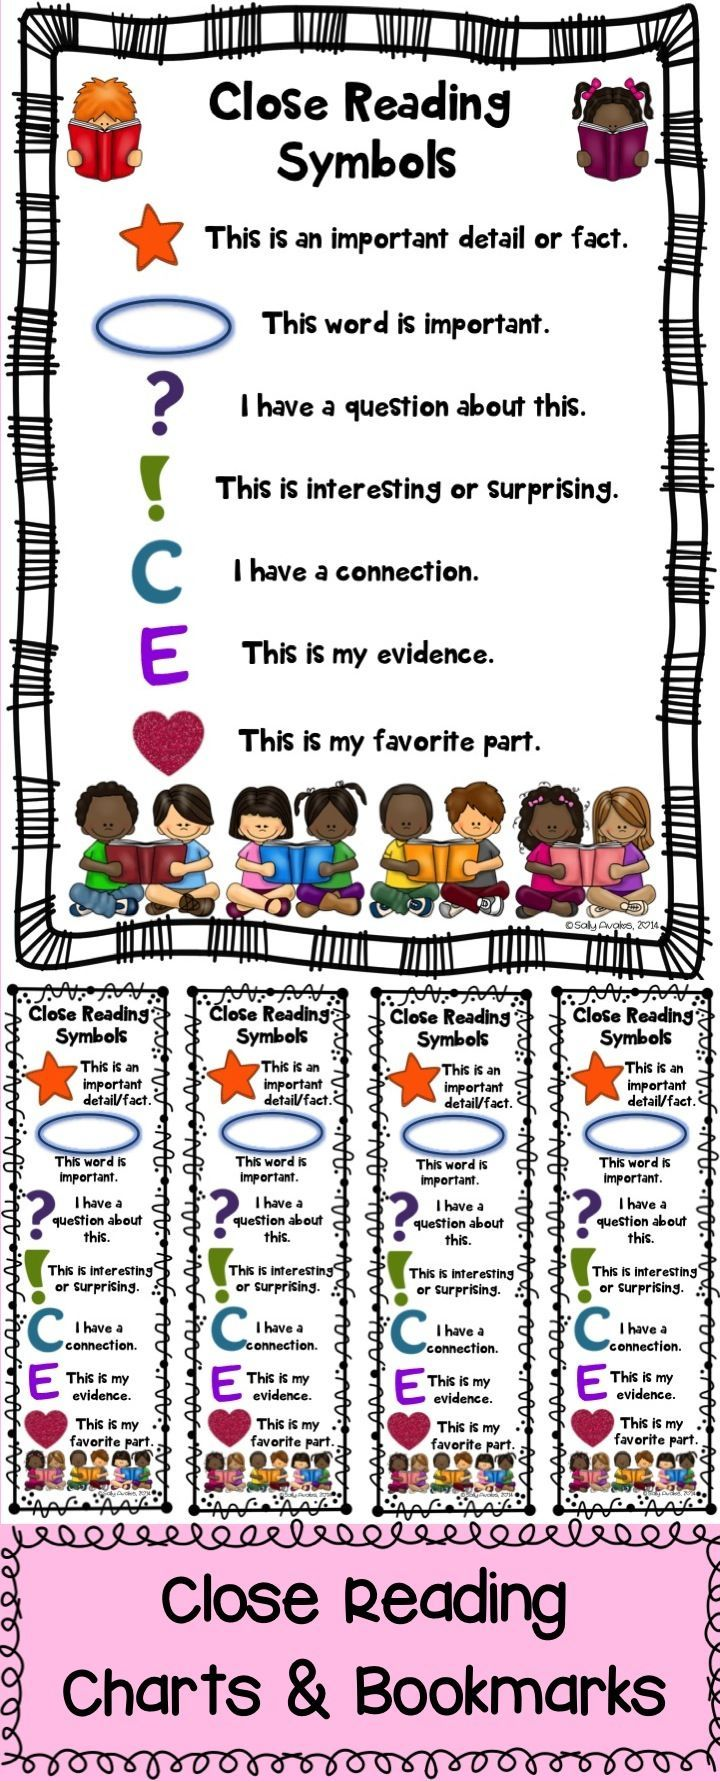 These Close Reading symbol charts & bookmarks are a must have during your close reading lessons! The file includes charts (2 color and 2 blackline masters) and bookmarks (1 color and 1 blackline master). You can use these as anchor charts, as posters, in notebooks, or in your students' close reading folder.